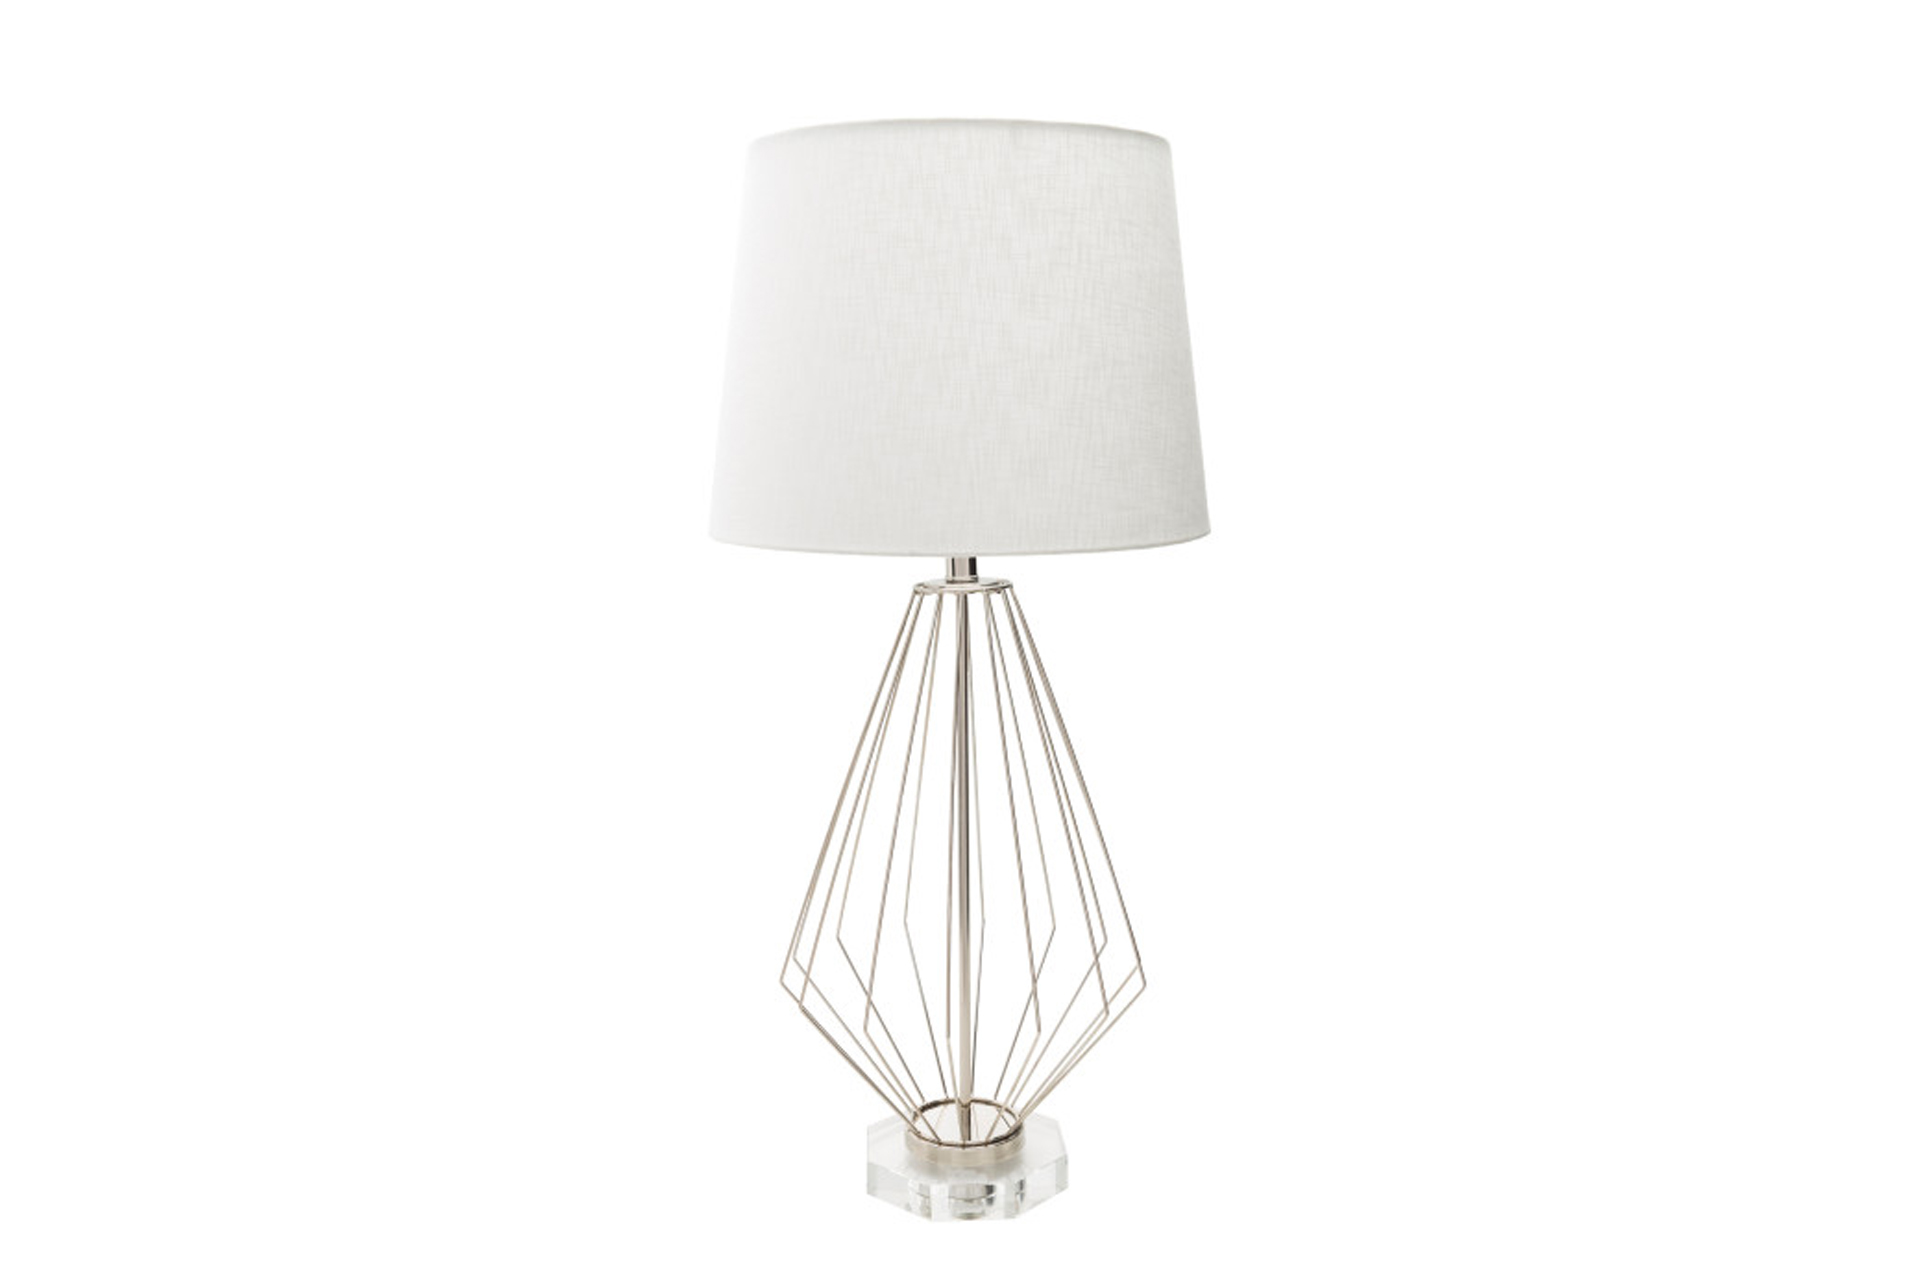 Table Lamp Geometric Wire (Qty: 1) Has Been Successfully Added To Your Cart.